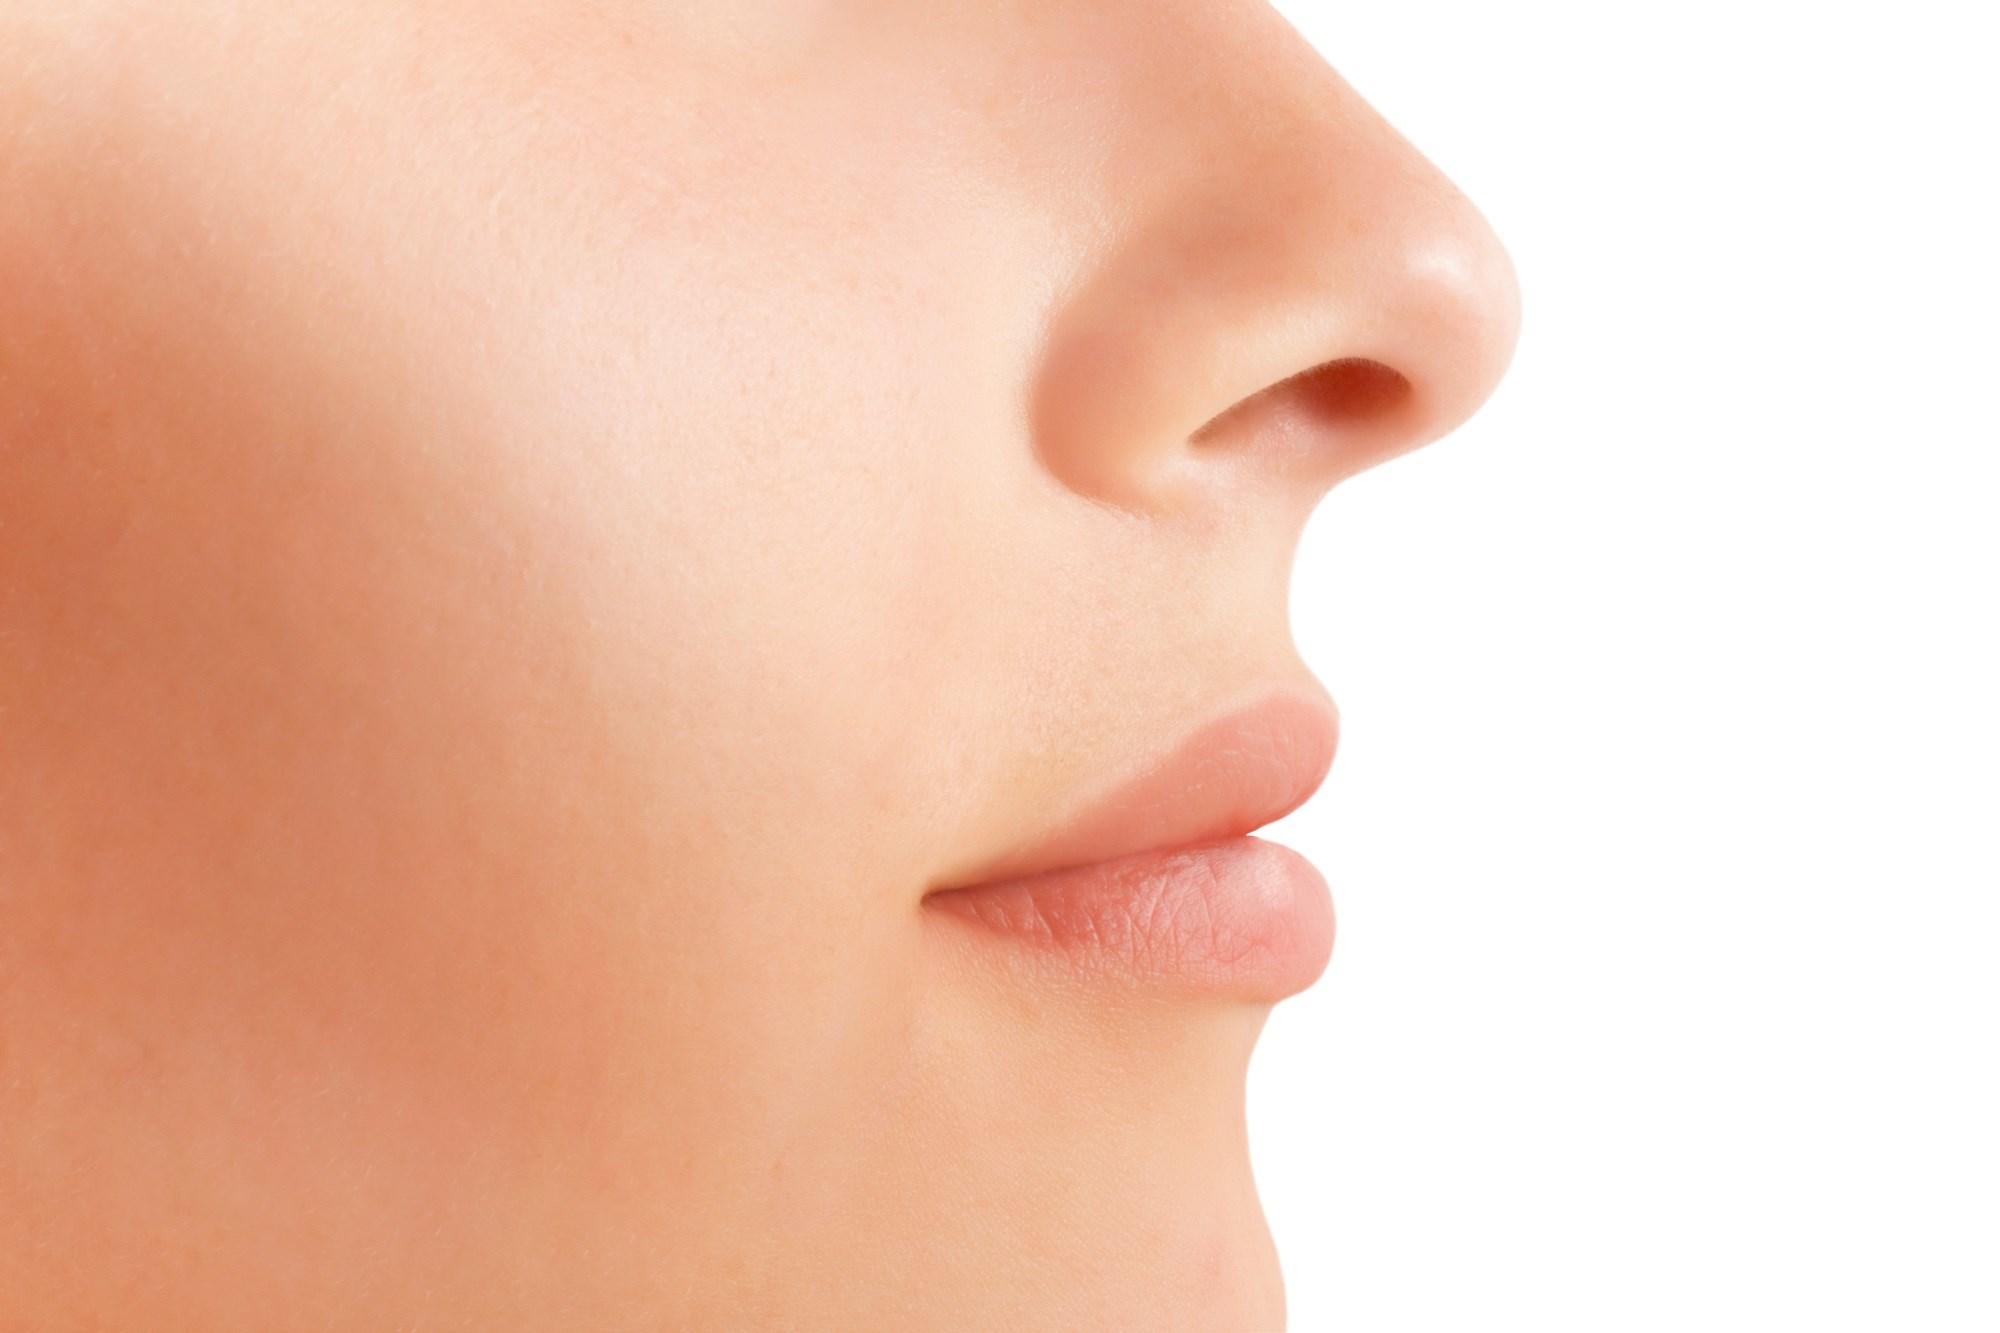 Olfactory Identification May Be Linked to Social, Cognitive Functioning in Schizophrenia